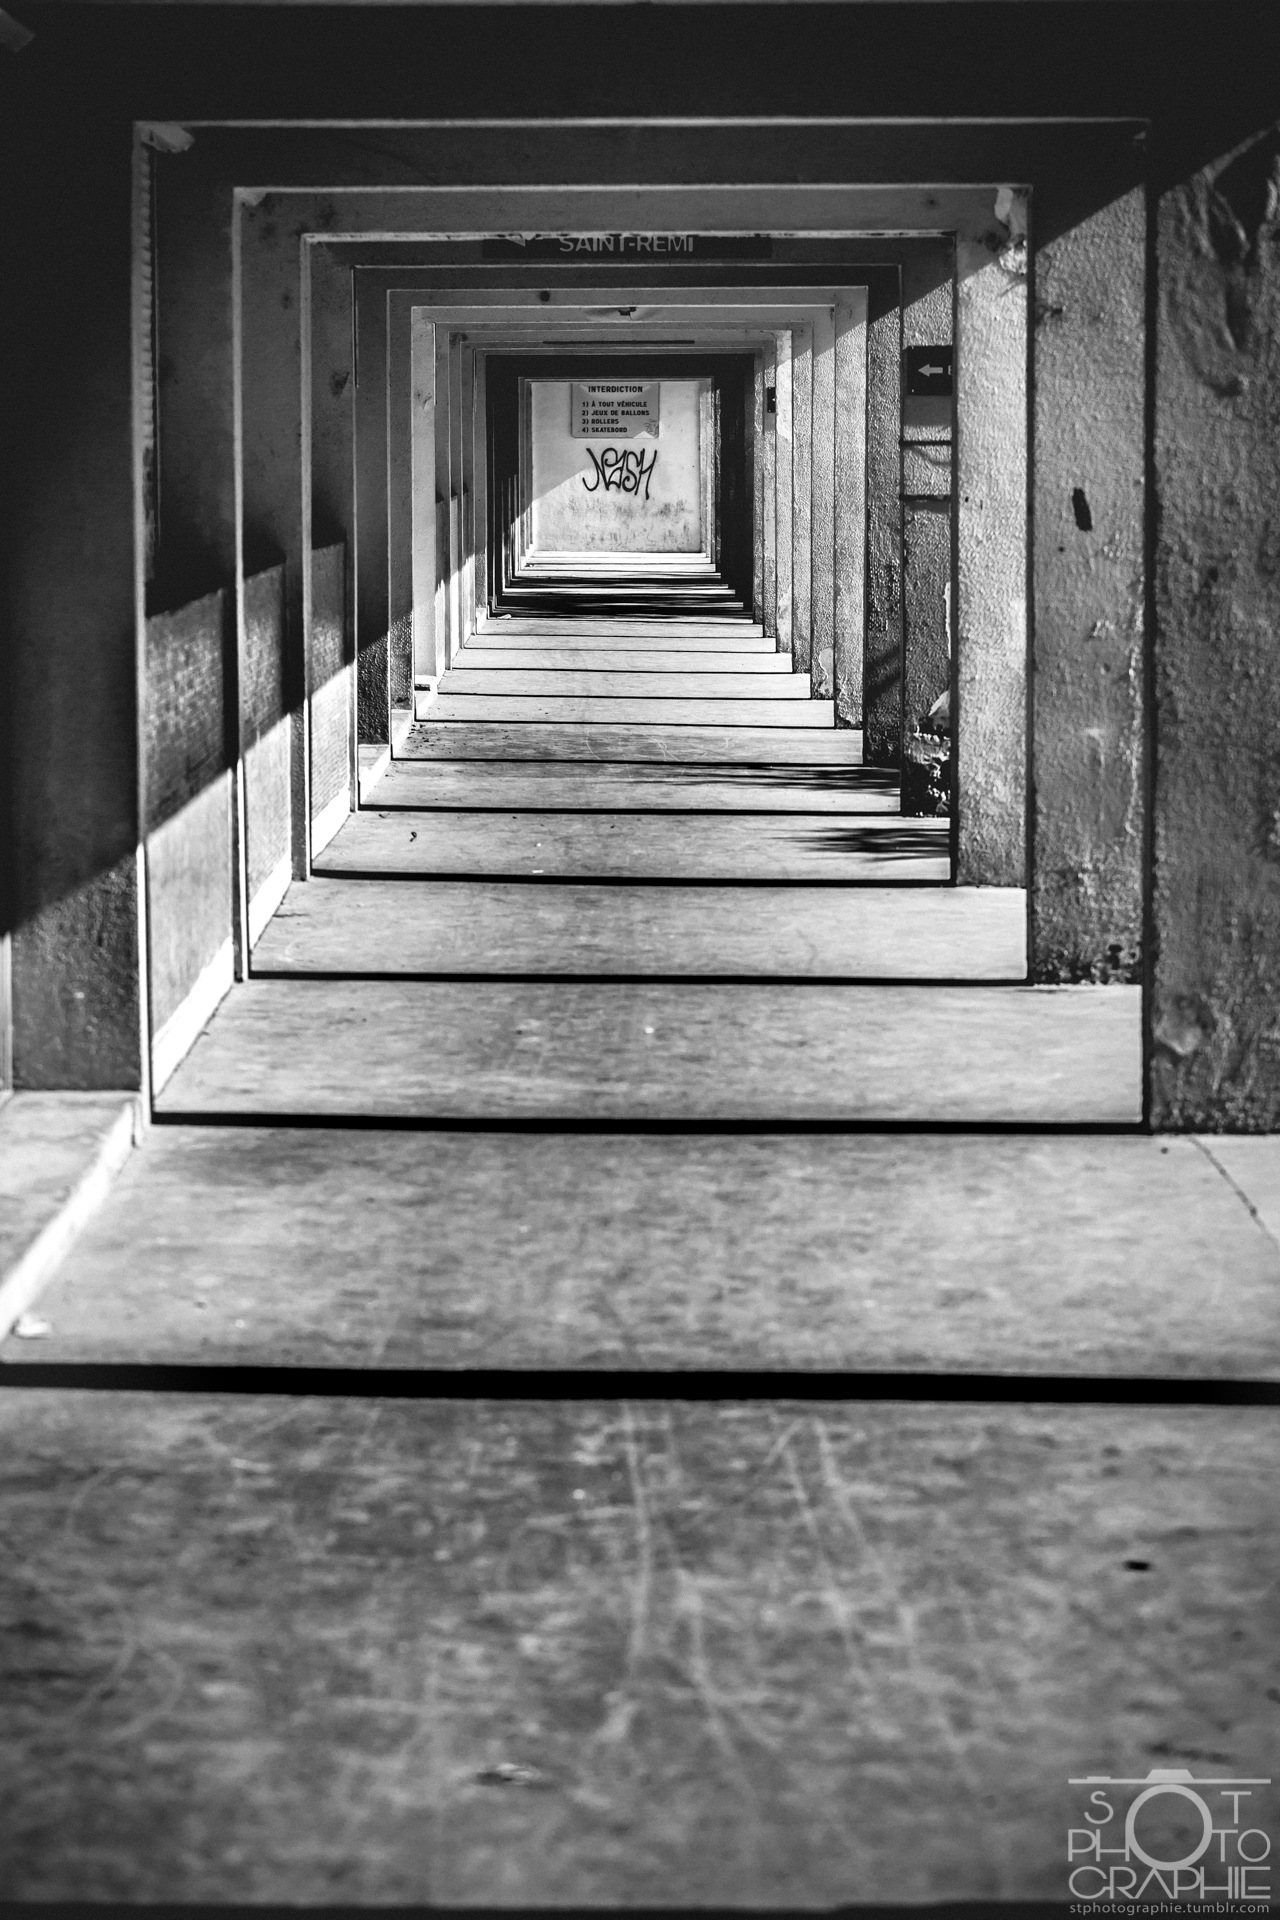 Perspective by STphotographie